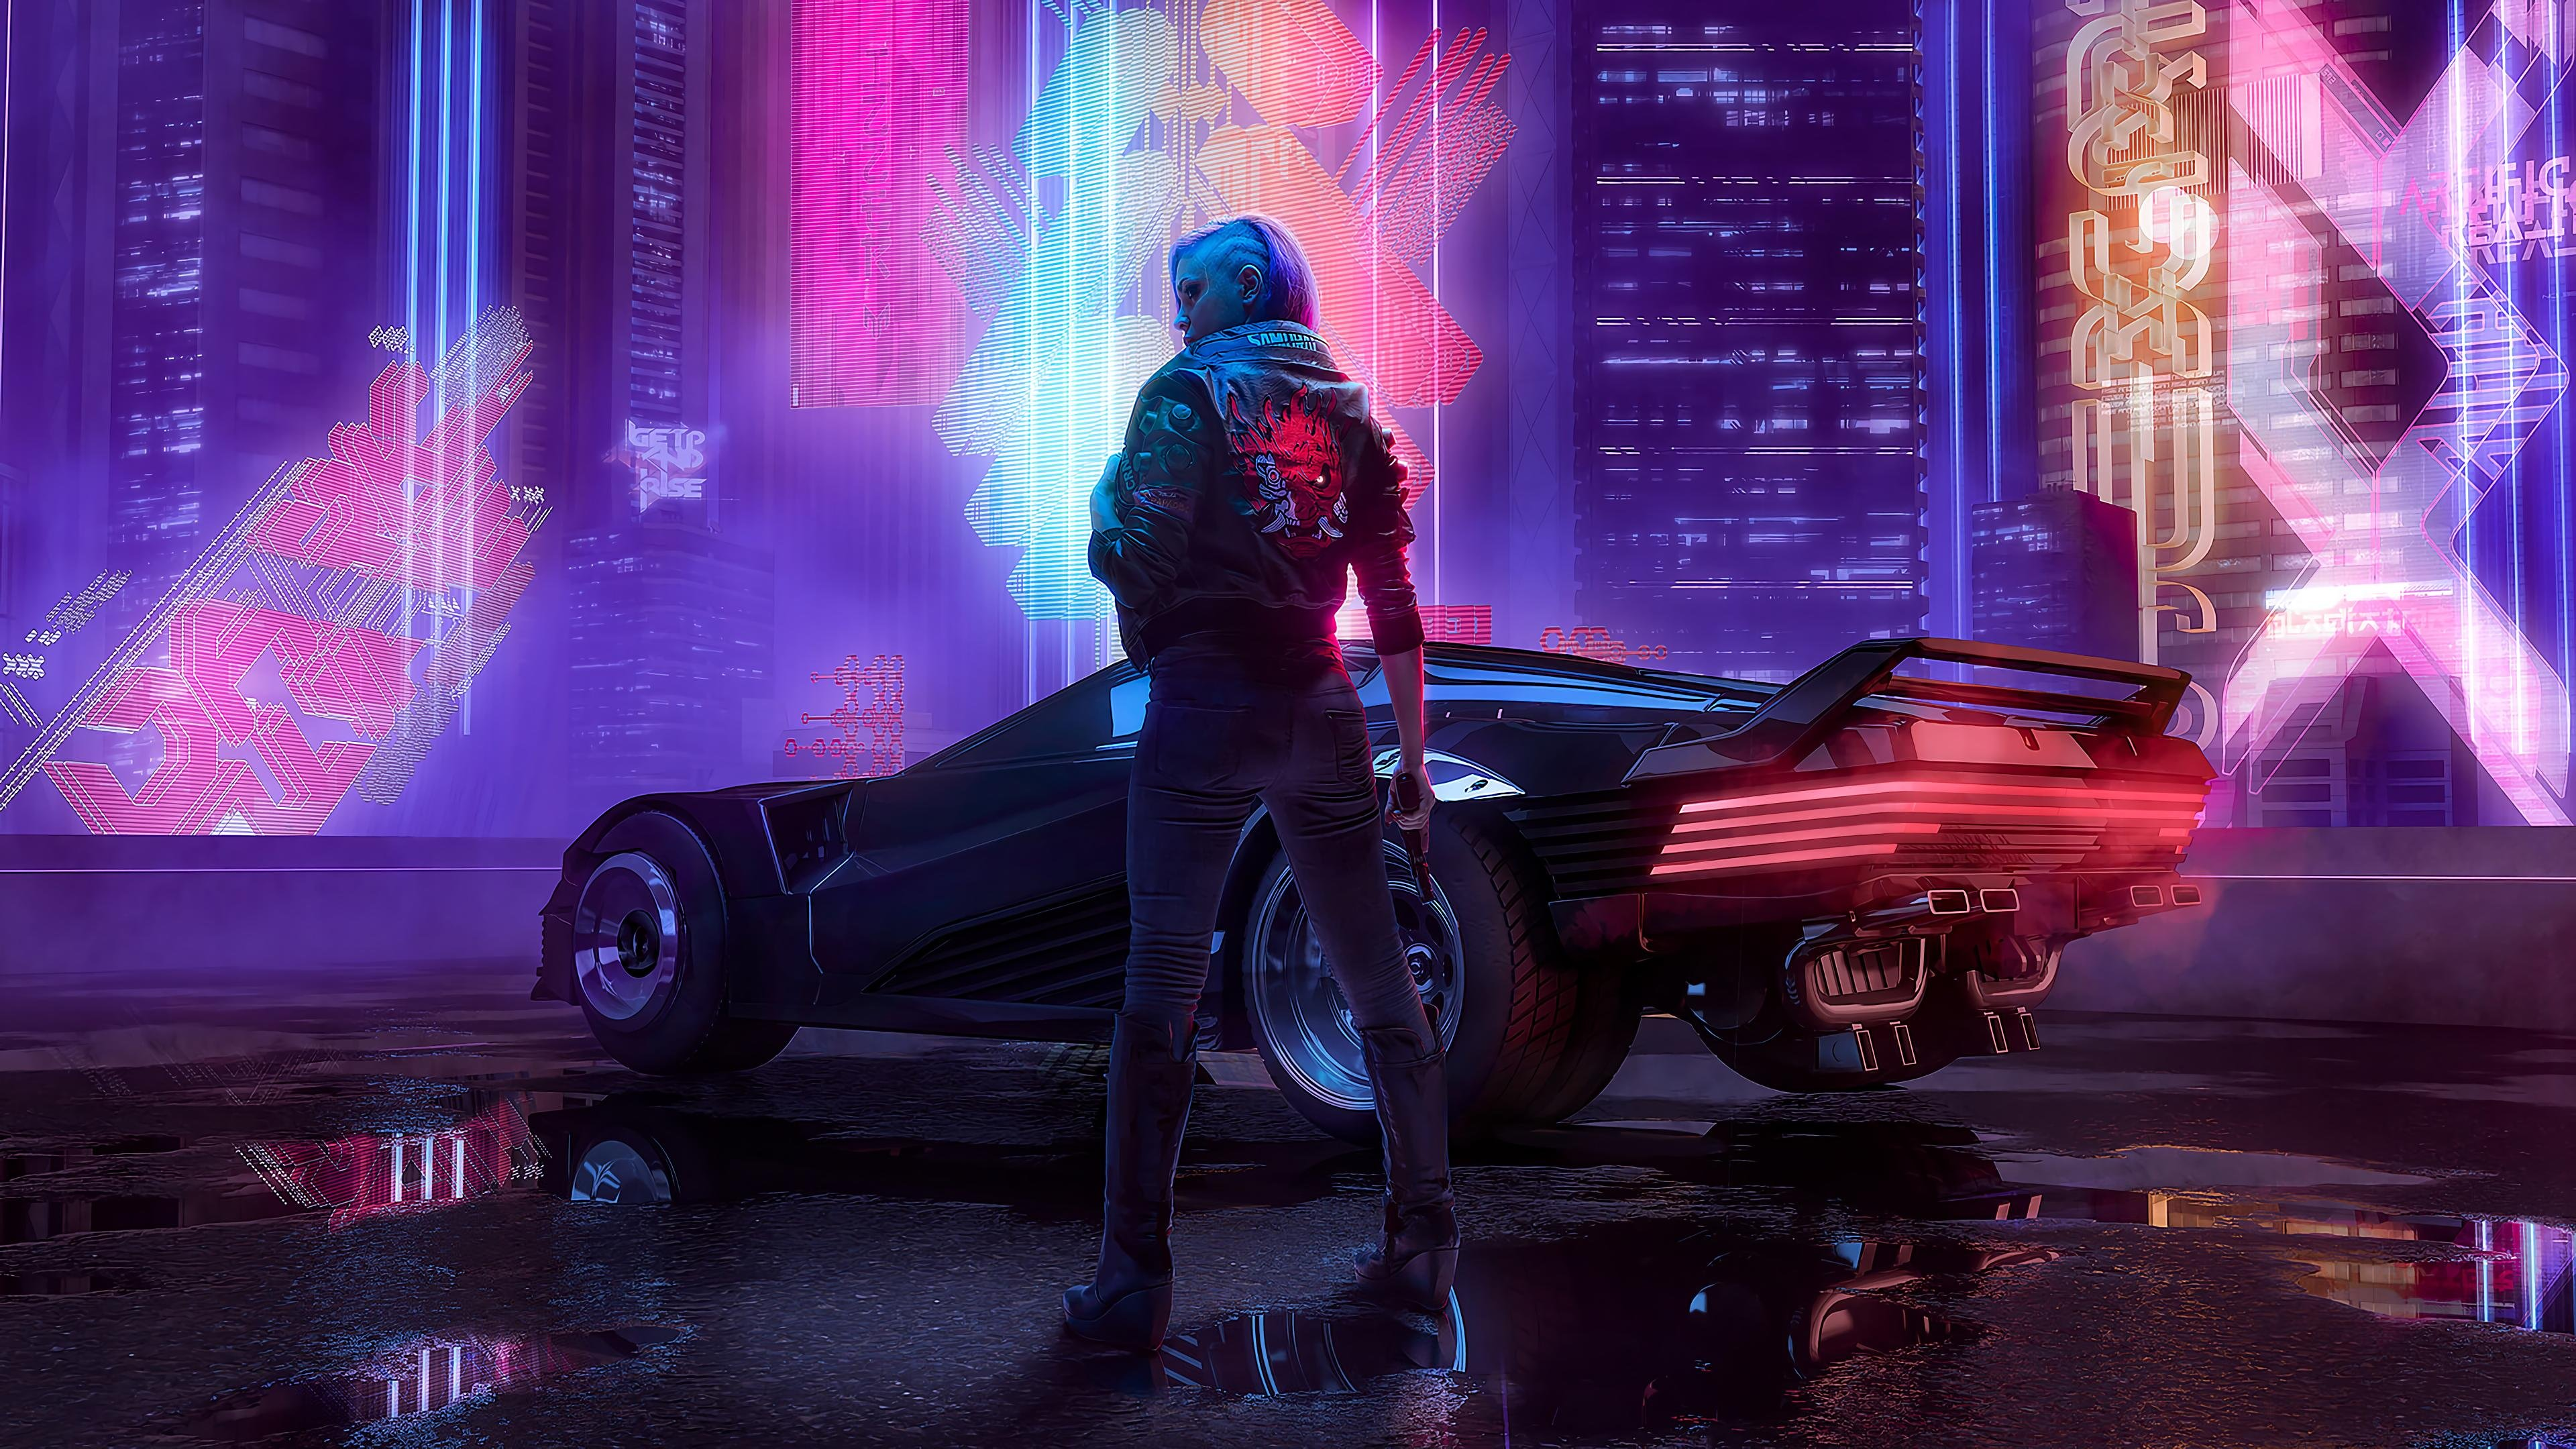 Cyberpunk Wallpapers 4k For Your Phone And Desktop Screen